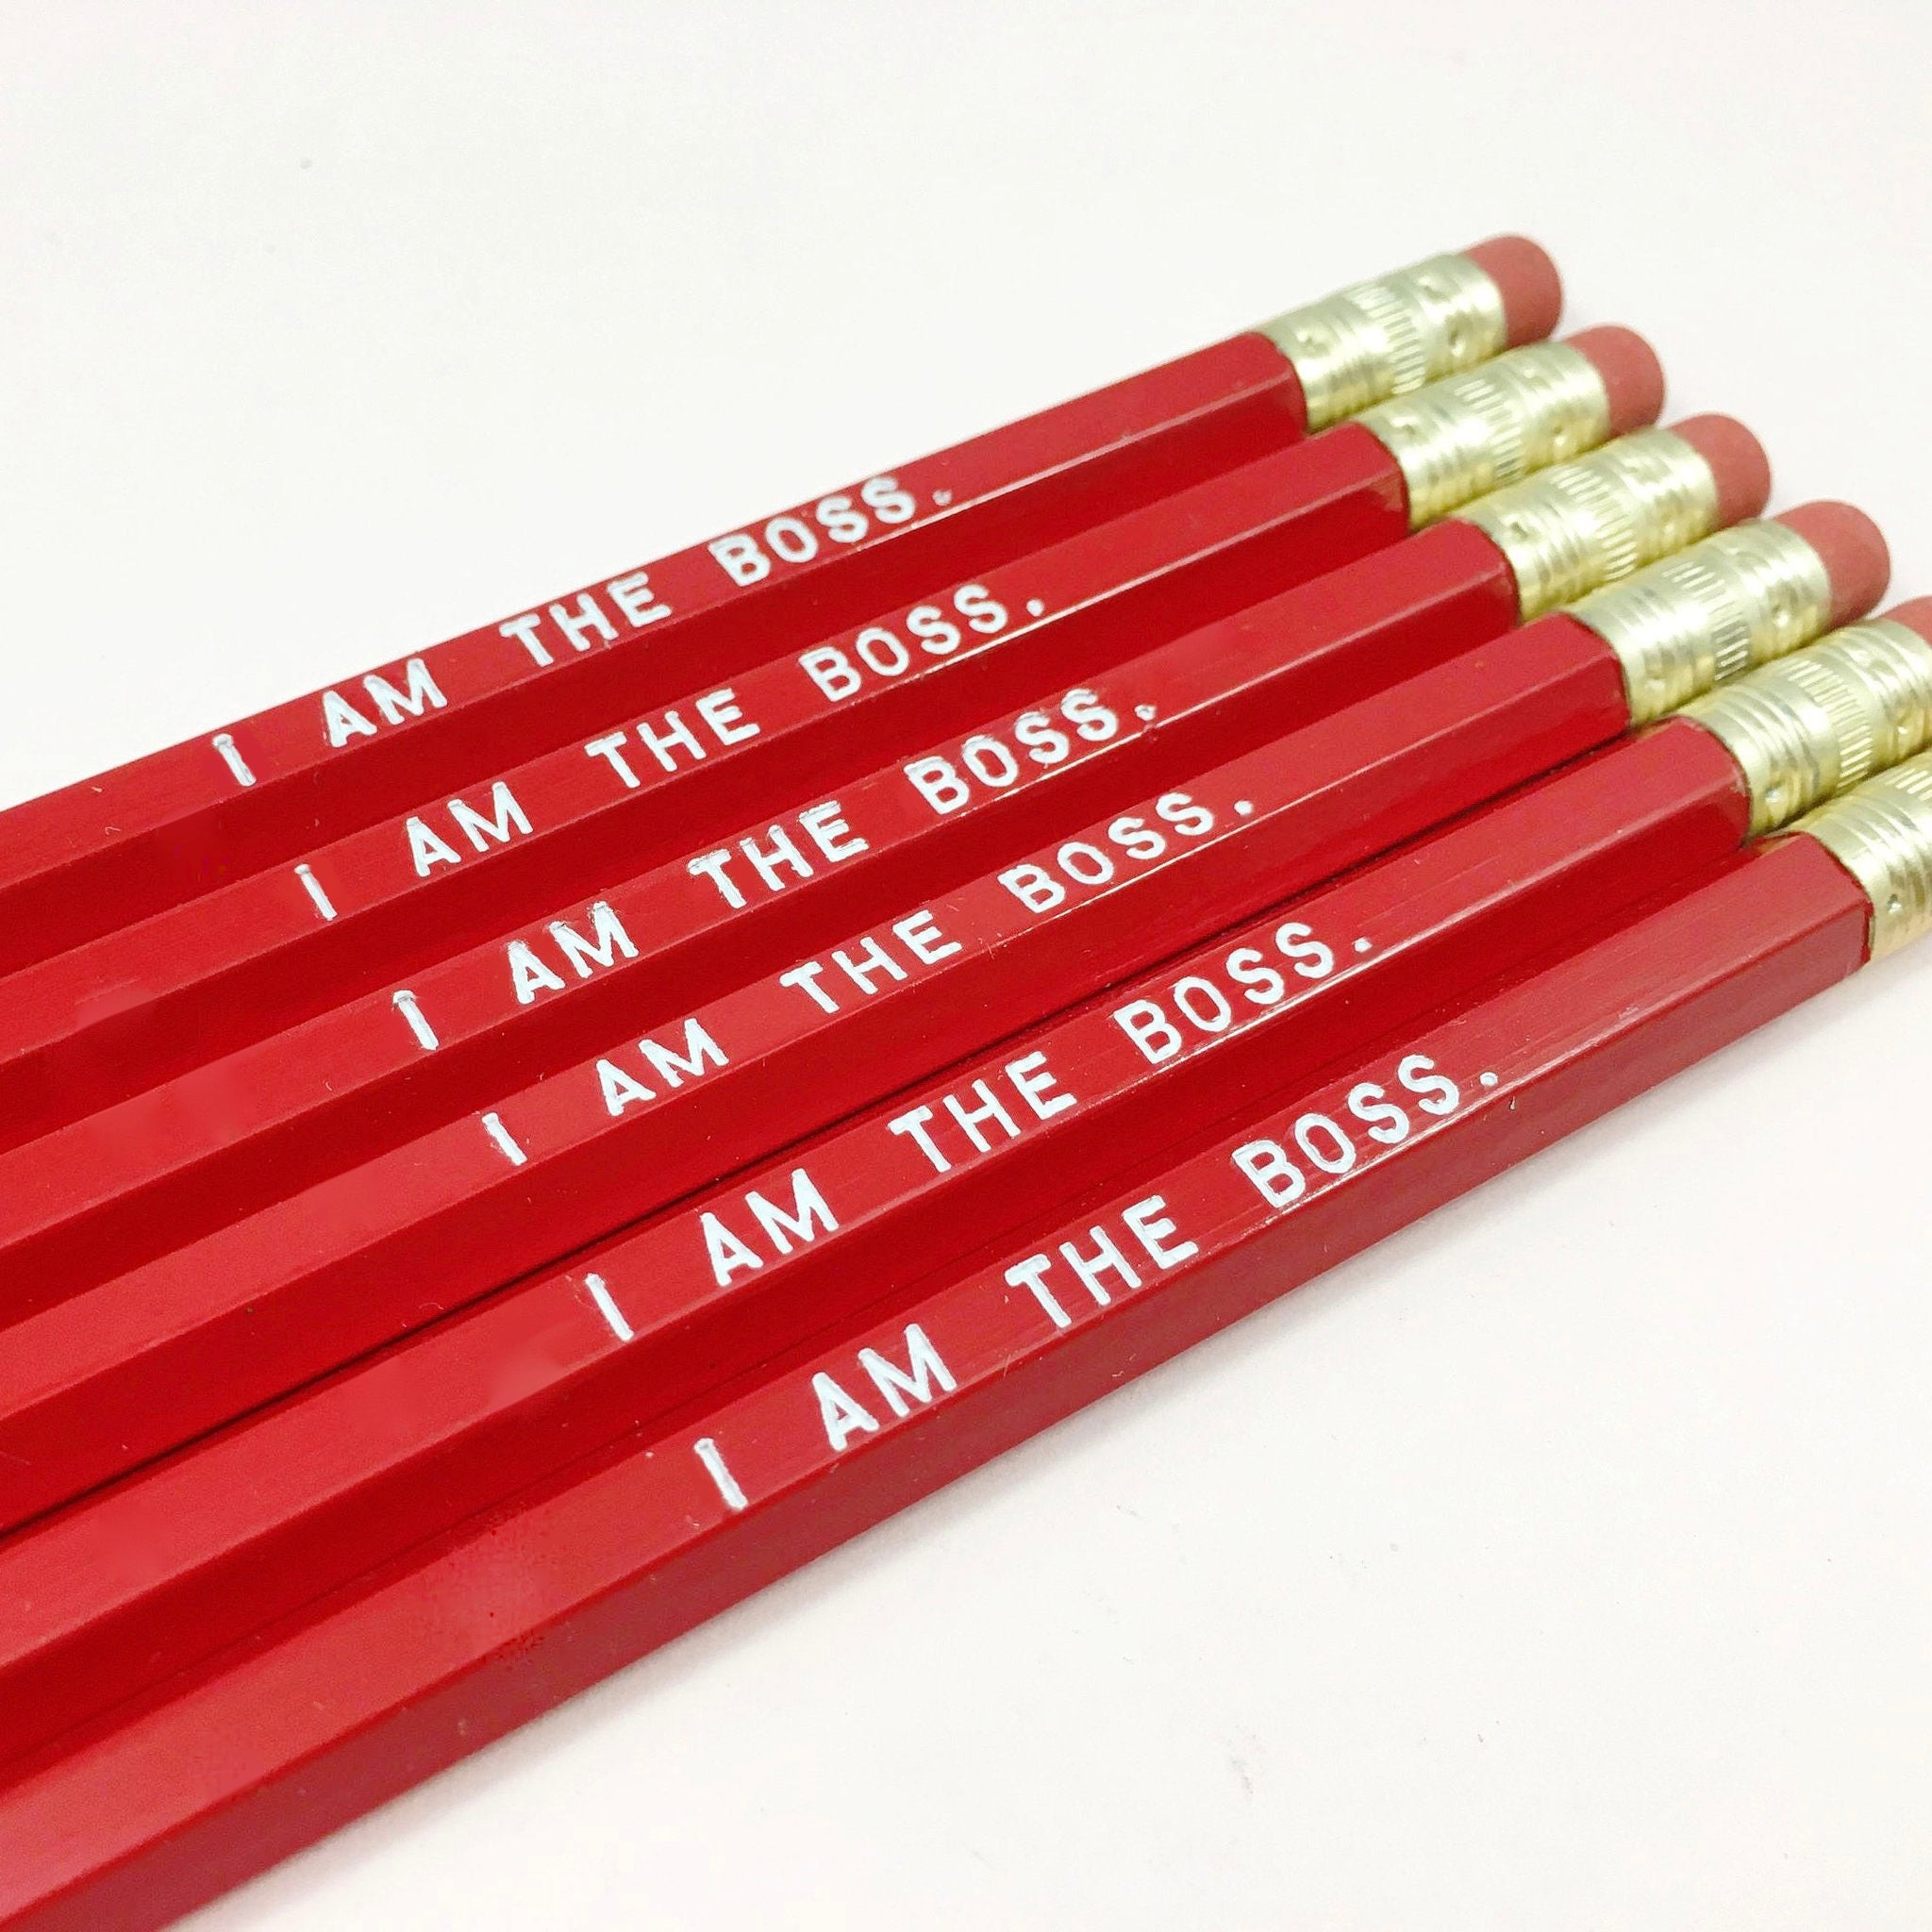 I AM THE BOSS Pencil Set